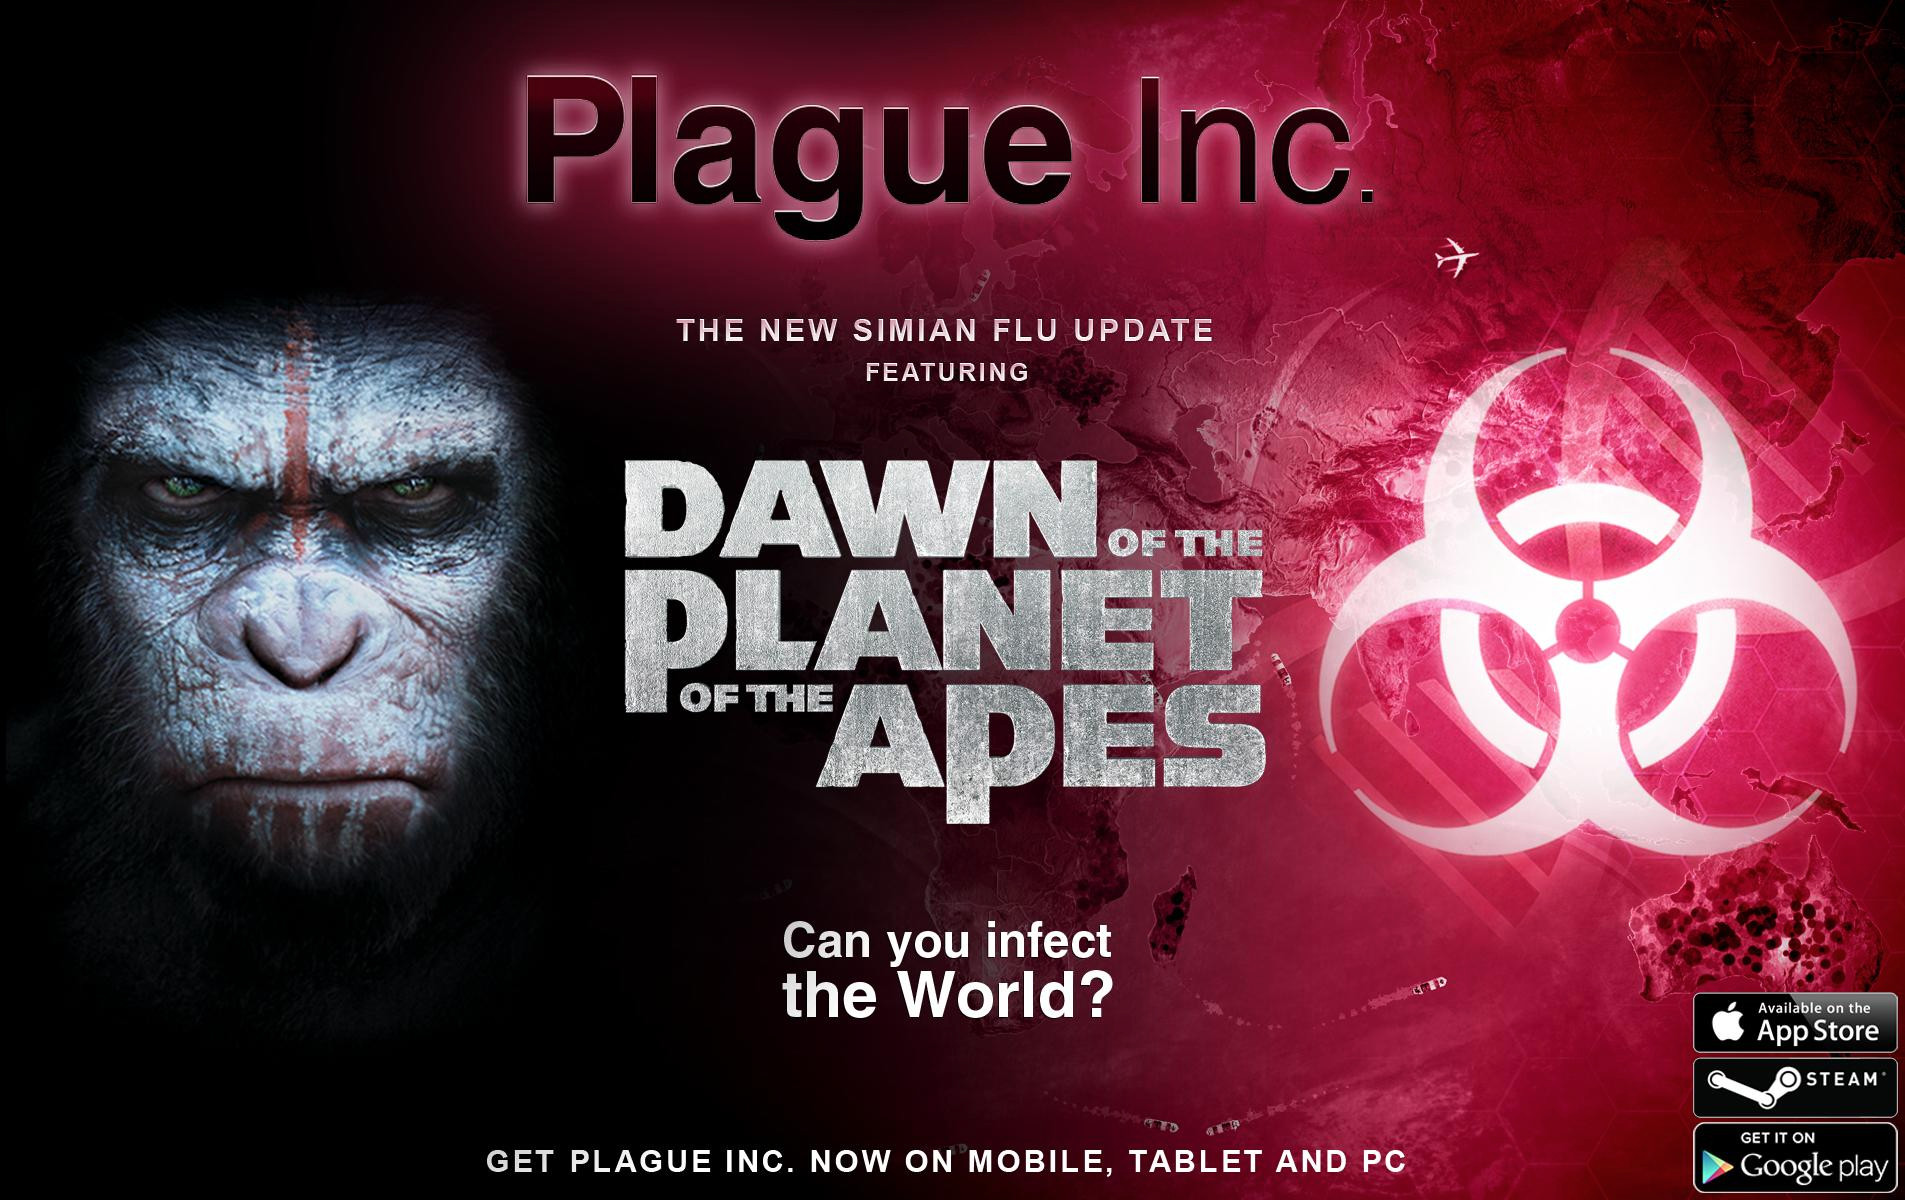 Plague Inc. is set to be updated with some Dawn of the Planet of the Apes themed content for iOS and Android